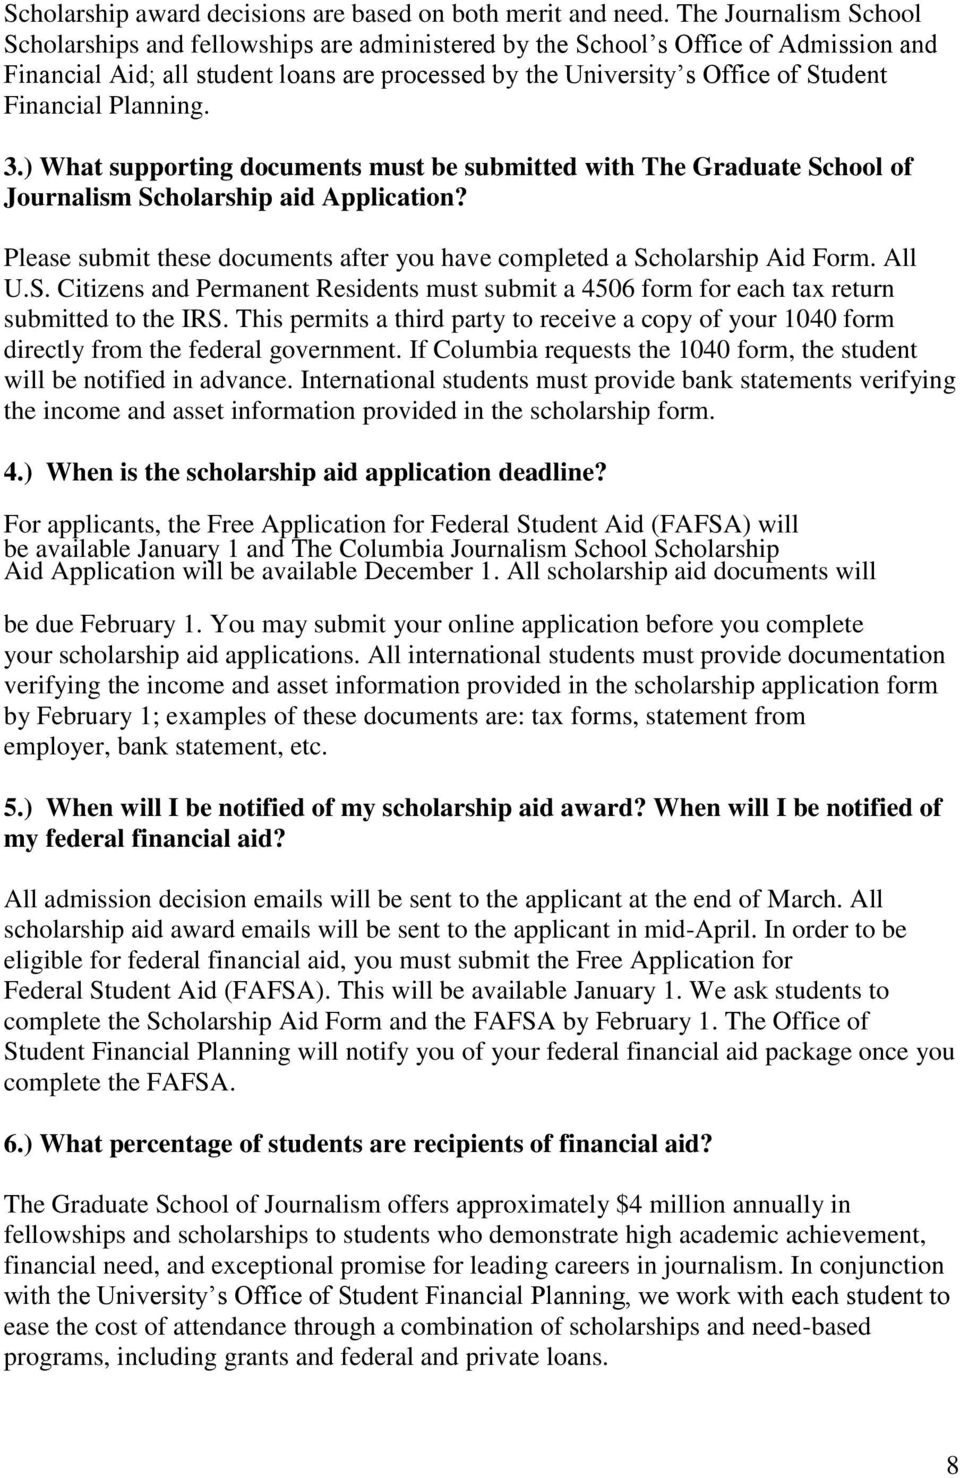 Financial Planning. 3.) What supporting documents must be submitted with The Graduate School of Journalism Scholarship aid Application?